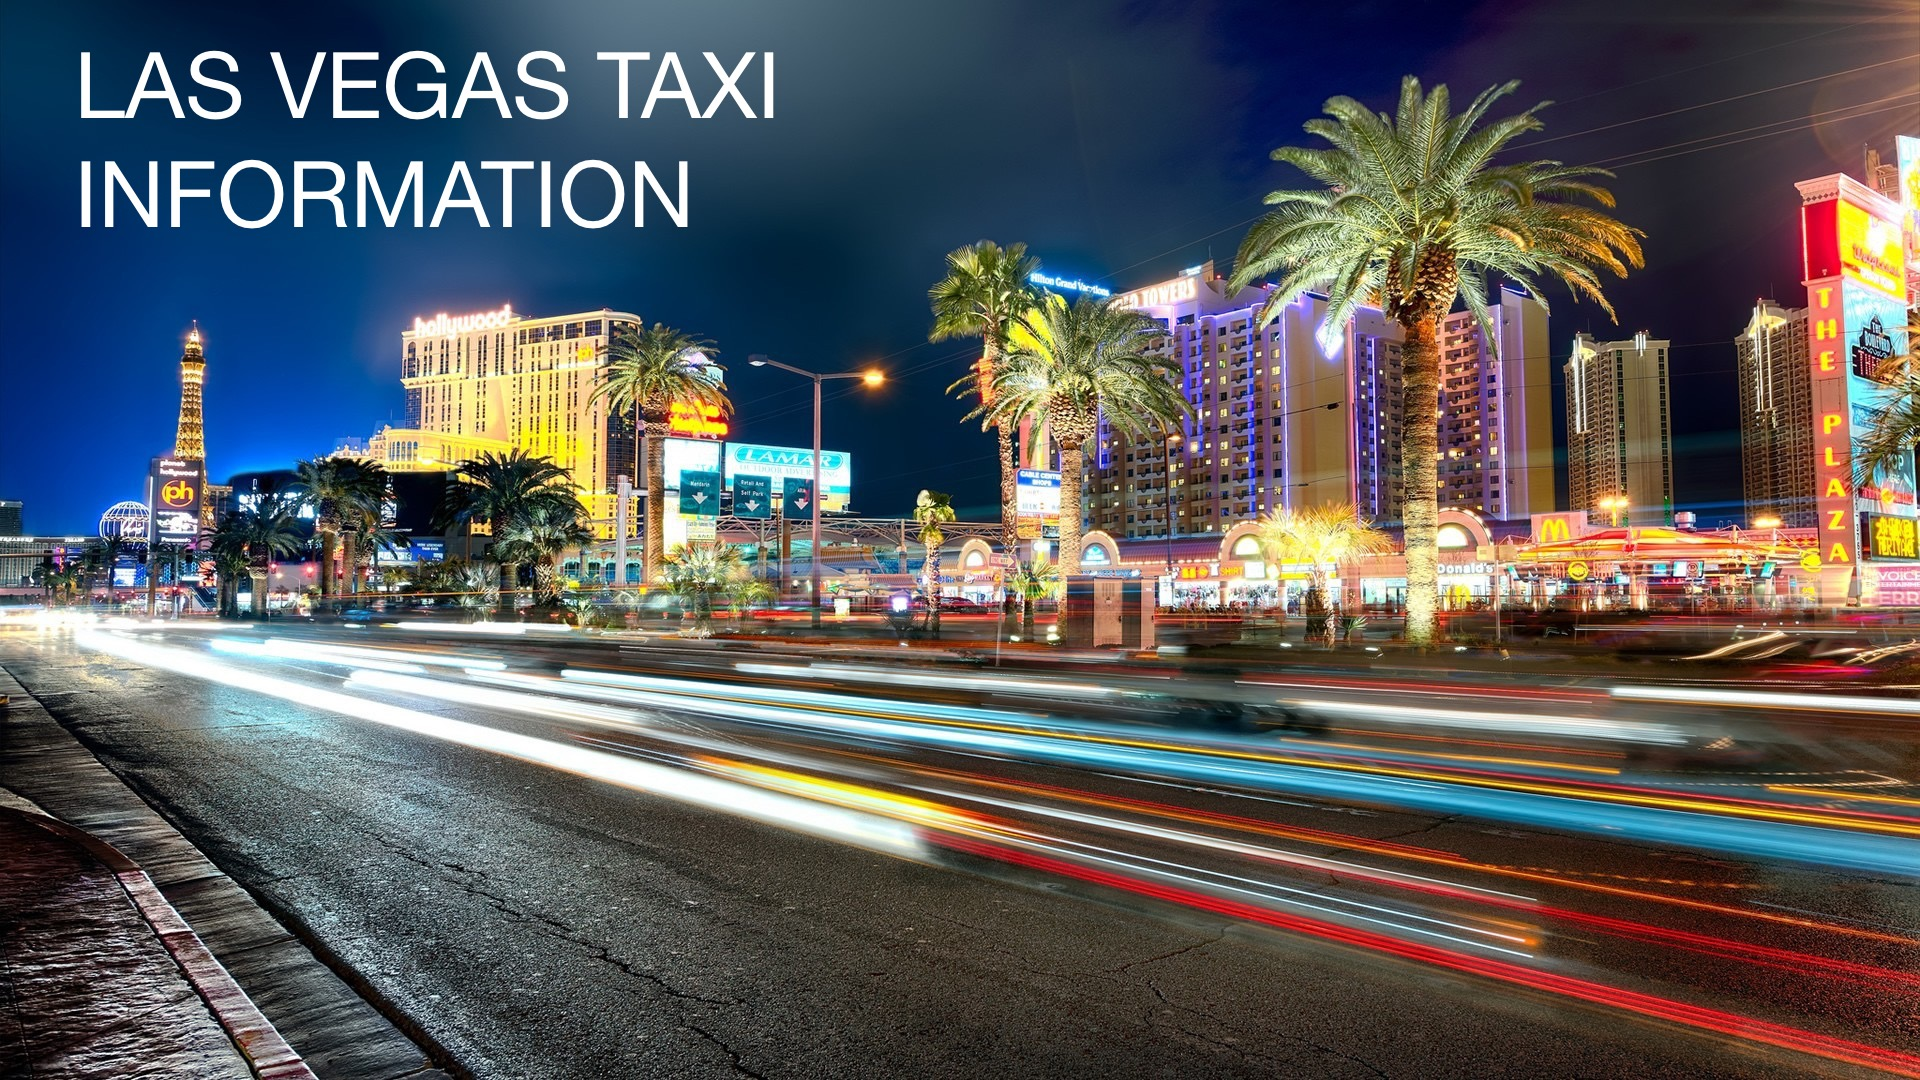 Las Vegas Taxi Expressexpense How To Make Receiptsexpressexpense How To Make Receipts